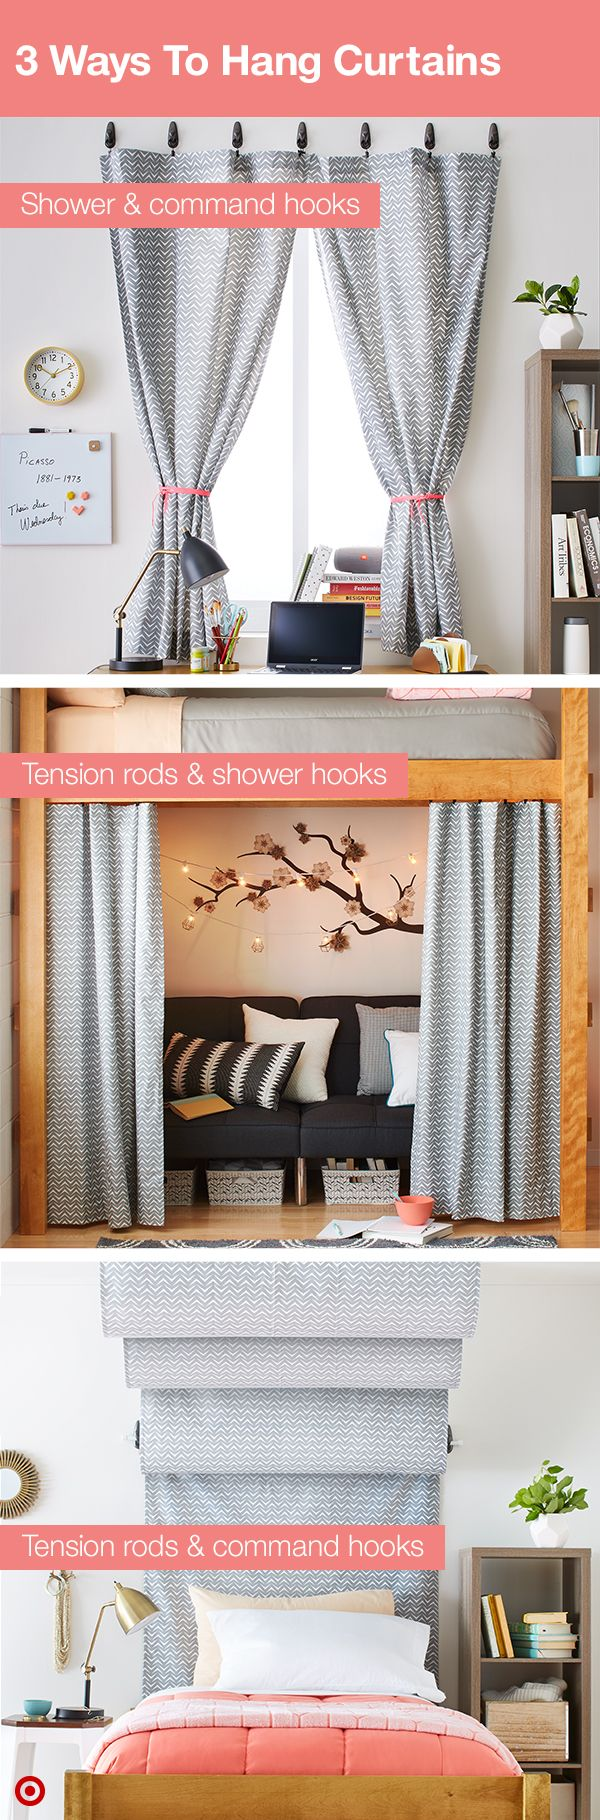 Curtains Can Add Personality And Privacy To Your College Dorm Room